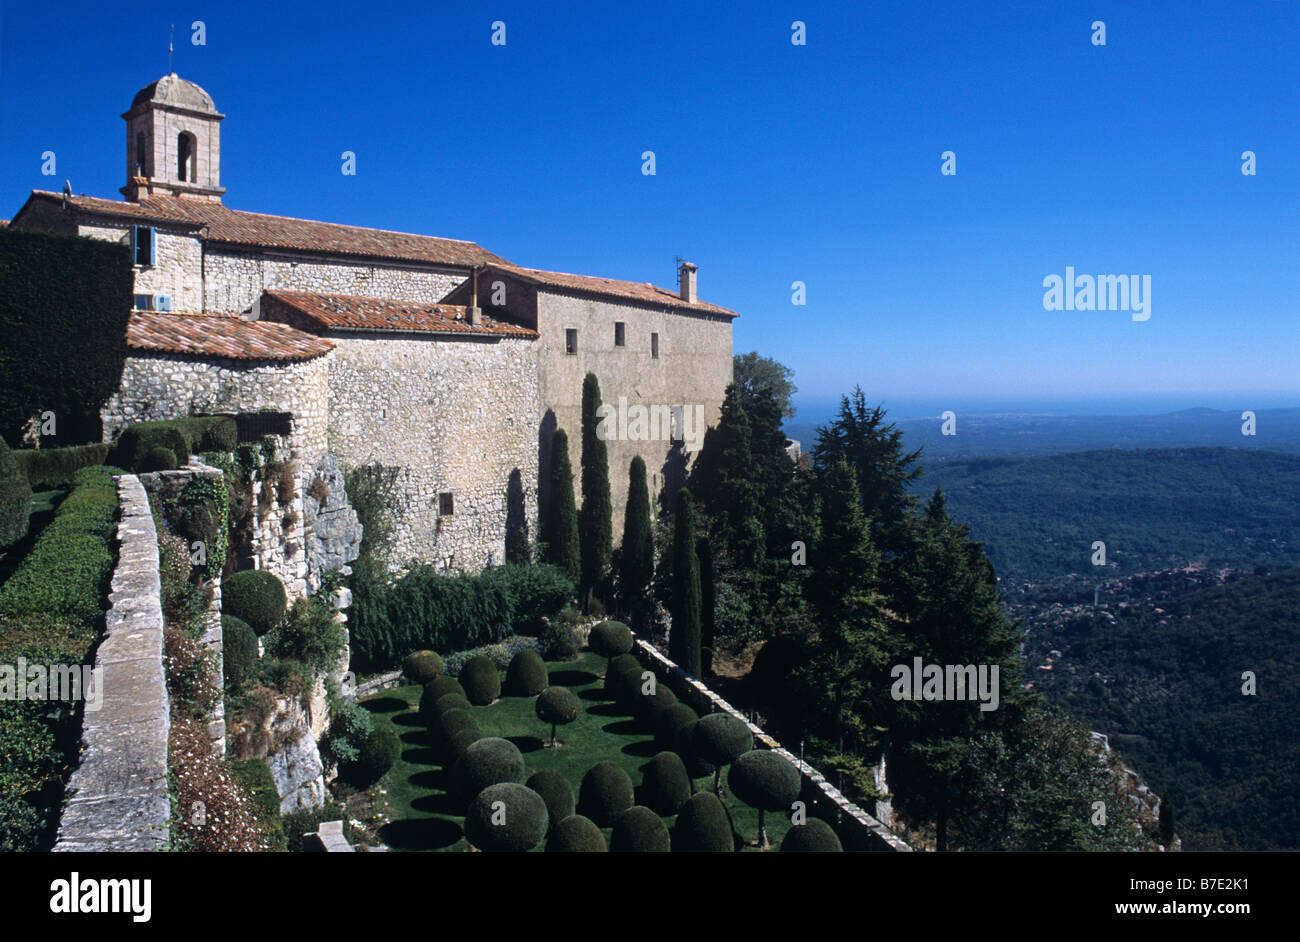 Church Formal Terrace Garden Of Gourdon Chateau With Topiary